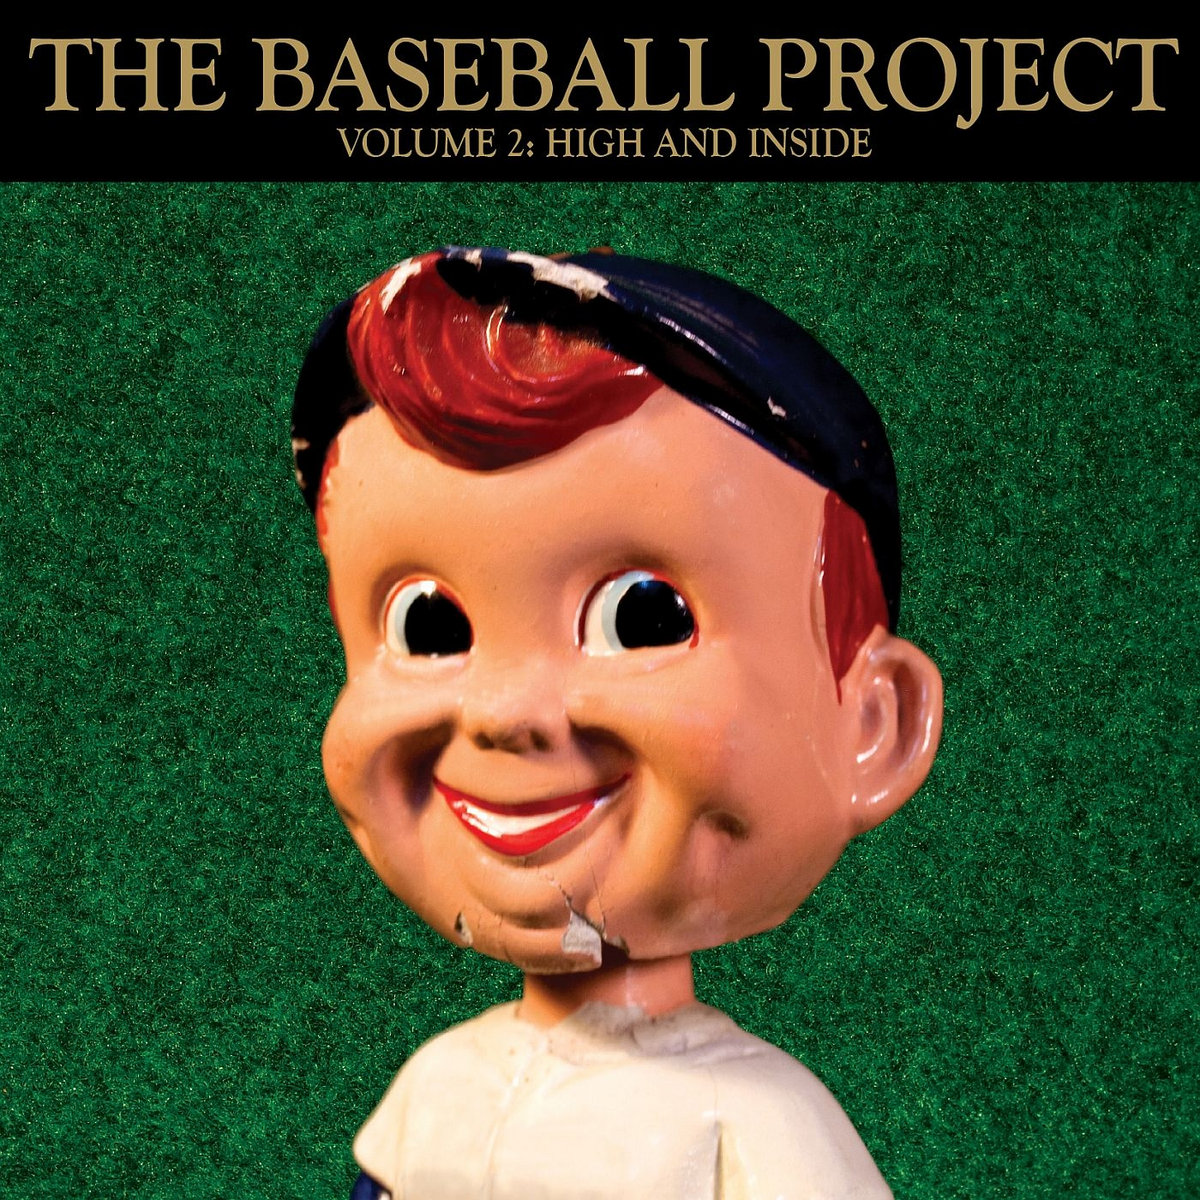 The Baseball Project - Volume 2 High and Inside (2011) [FLAC] Download